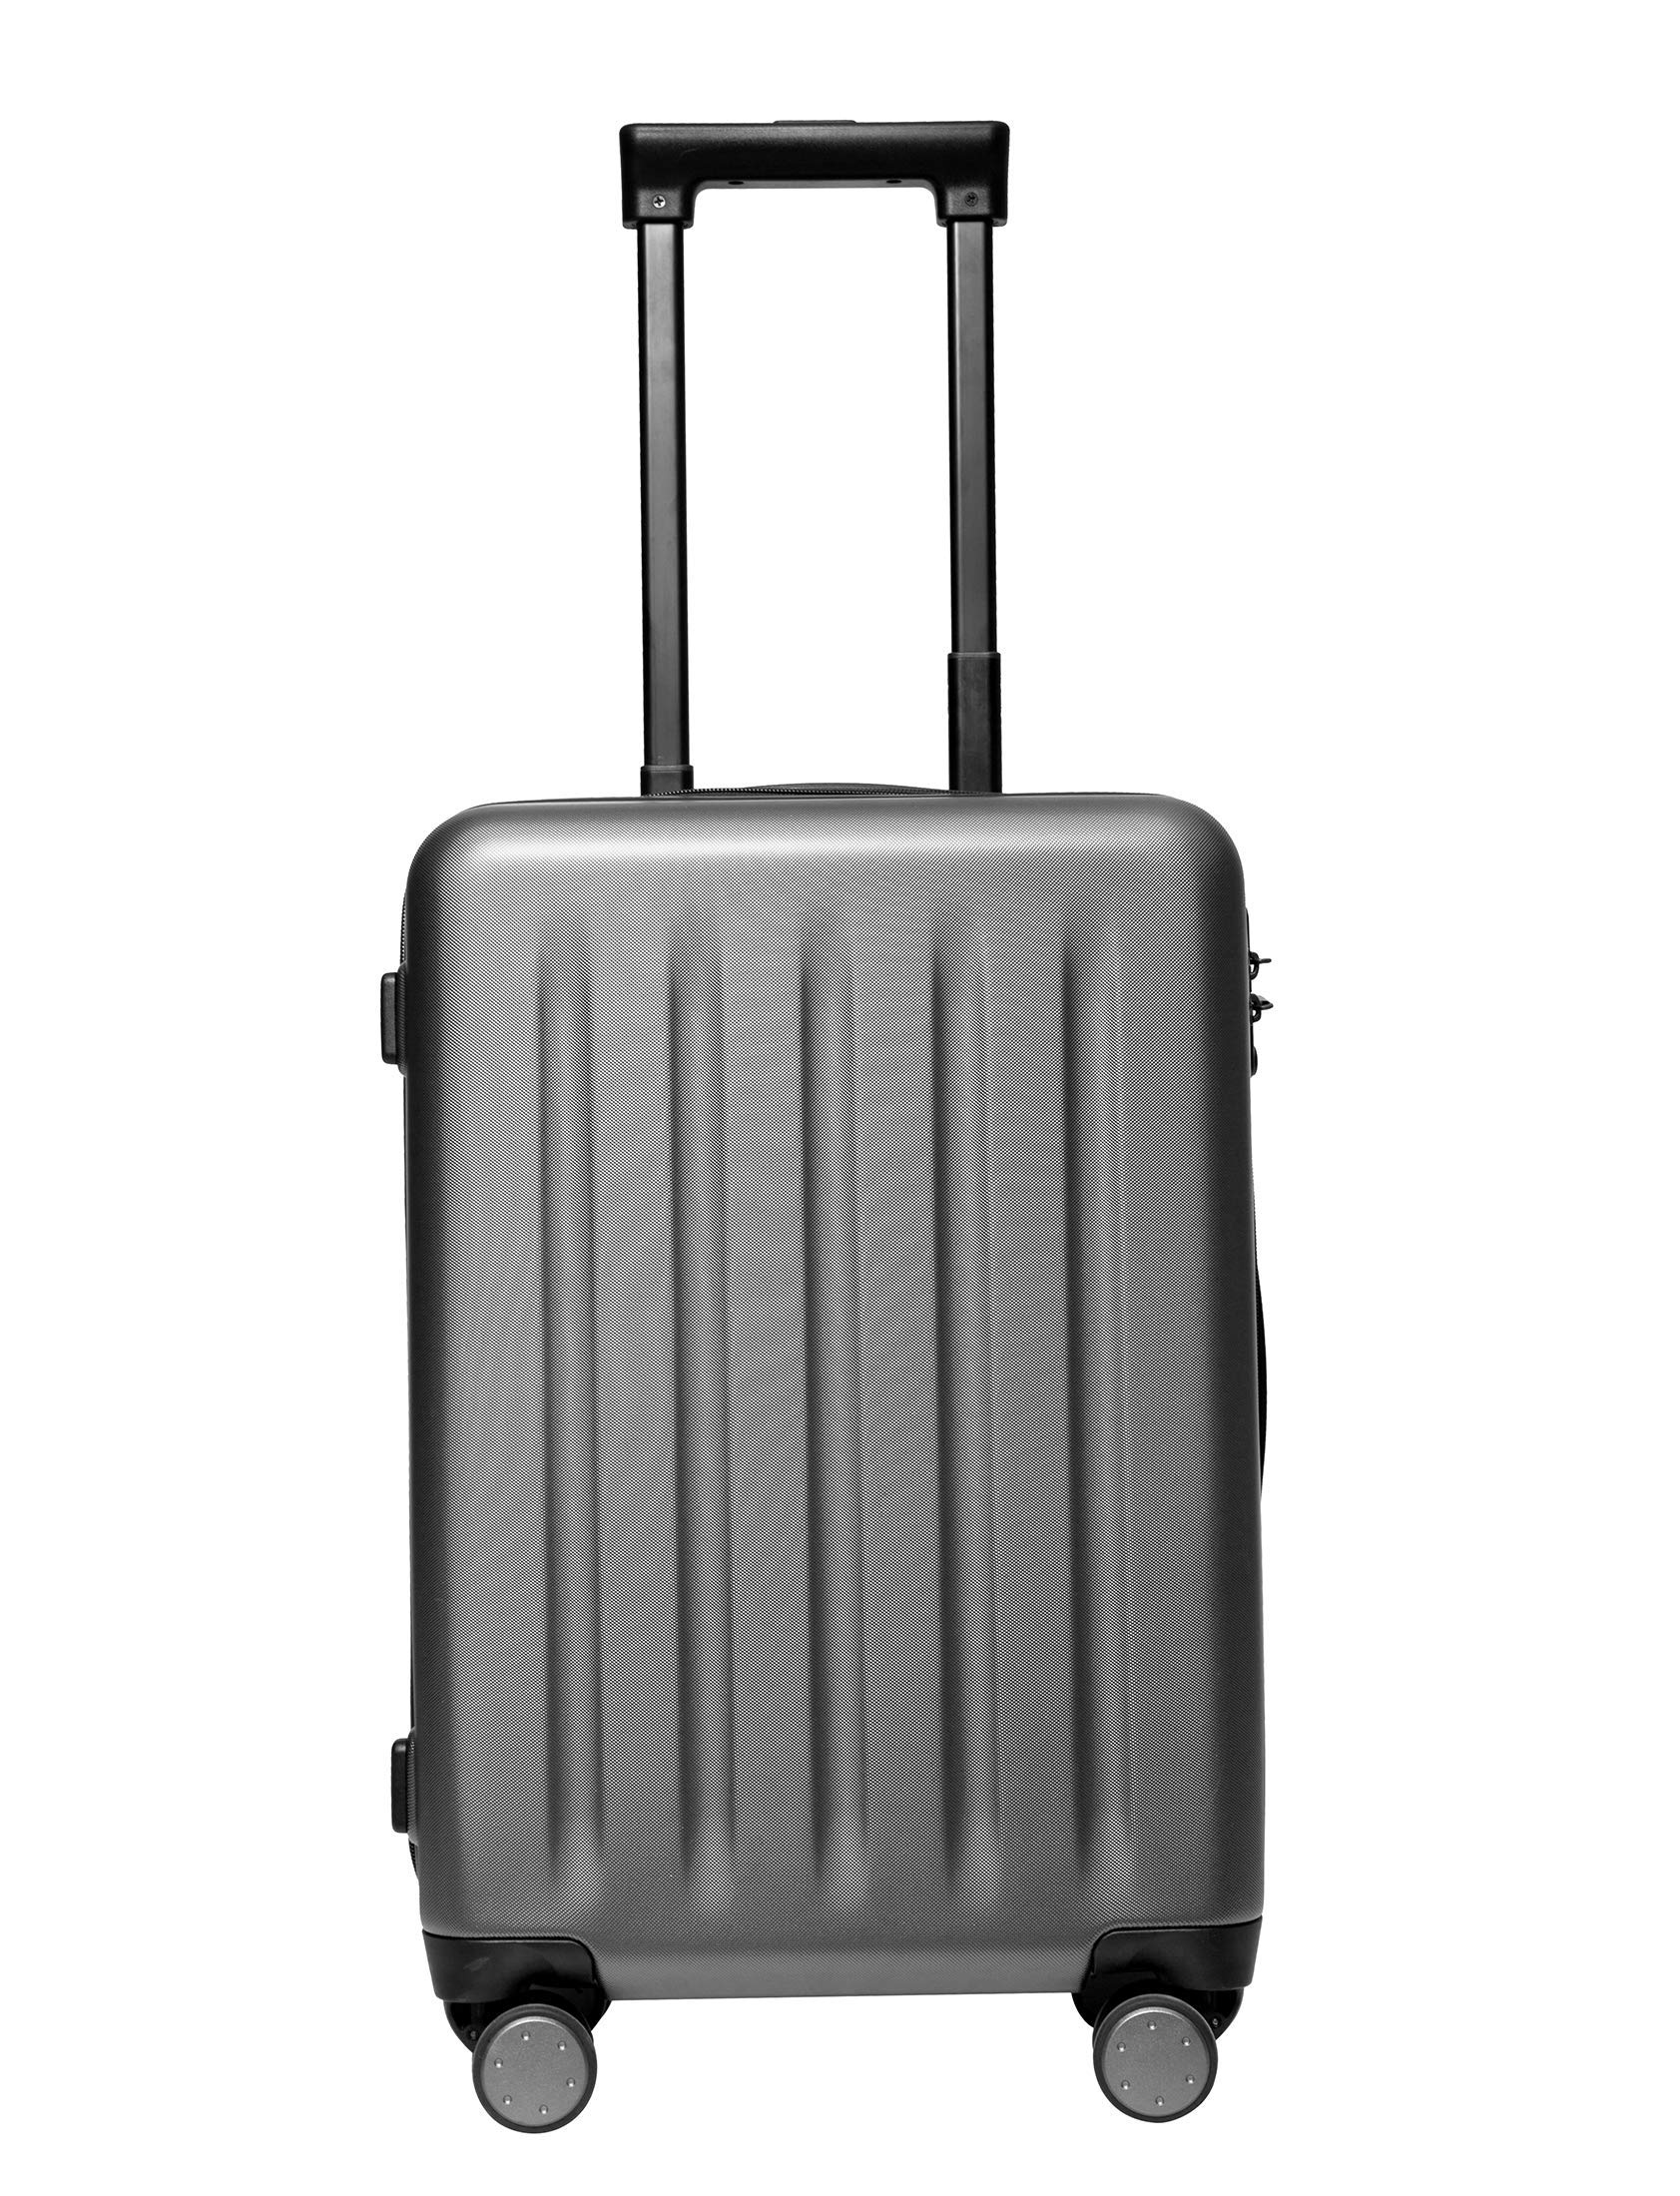 """Mi Polycarbonate 24"""" (61cms) Grey, Hardsided Check-in Luggage (XDLGX-02) product image"""